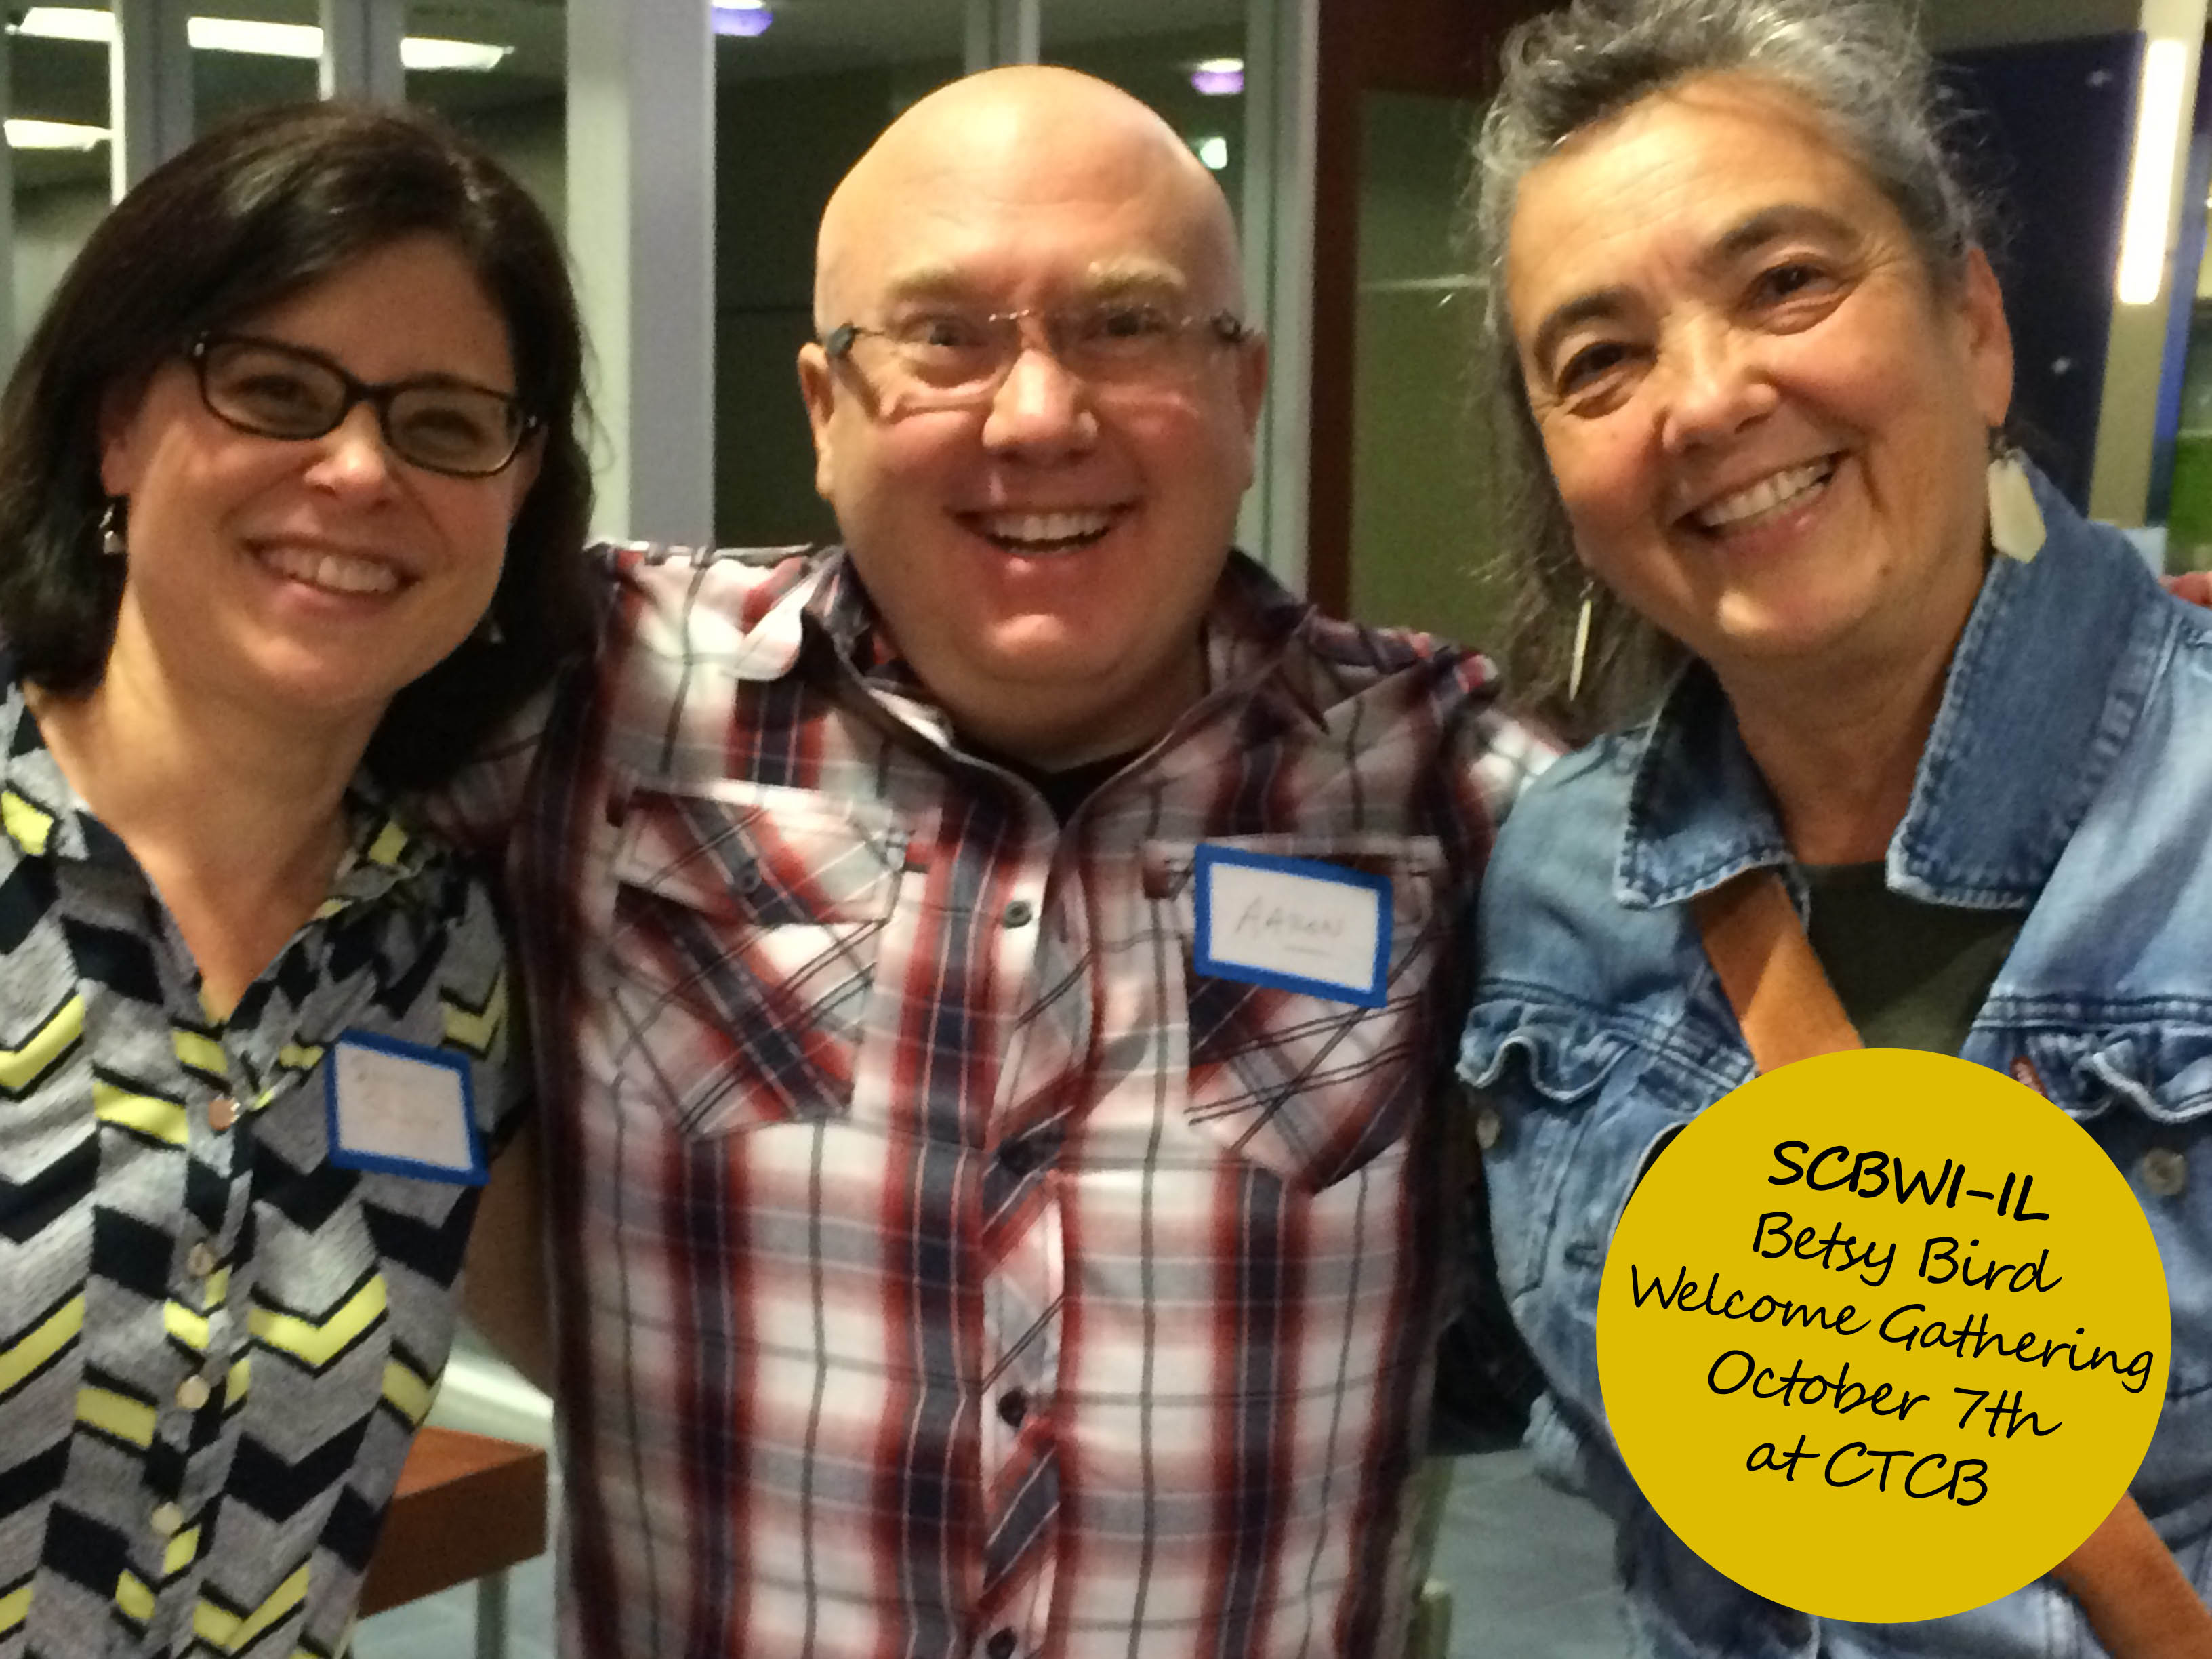 Author and ARA, Sara Shacter, author Aaron Reynolds and author-illustrator Laura Montenegro at the Betsy Bird Welcome Party at the Center for Teaching Through Children's Books on October 7th!